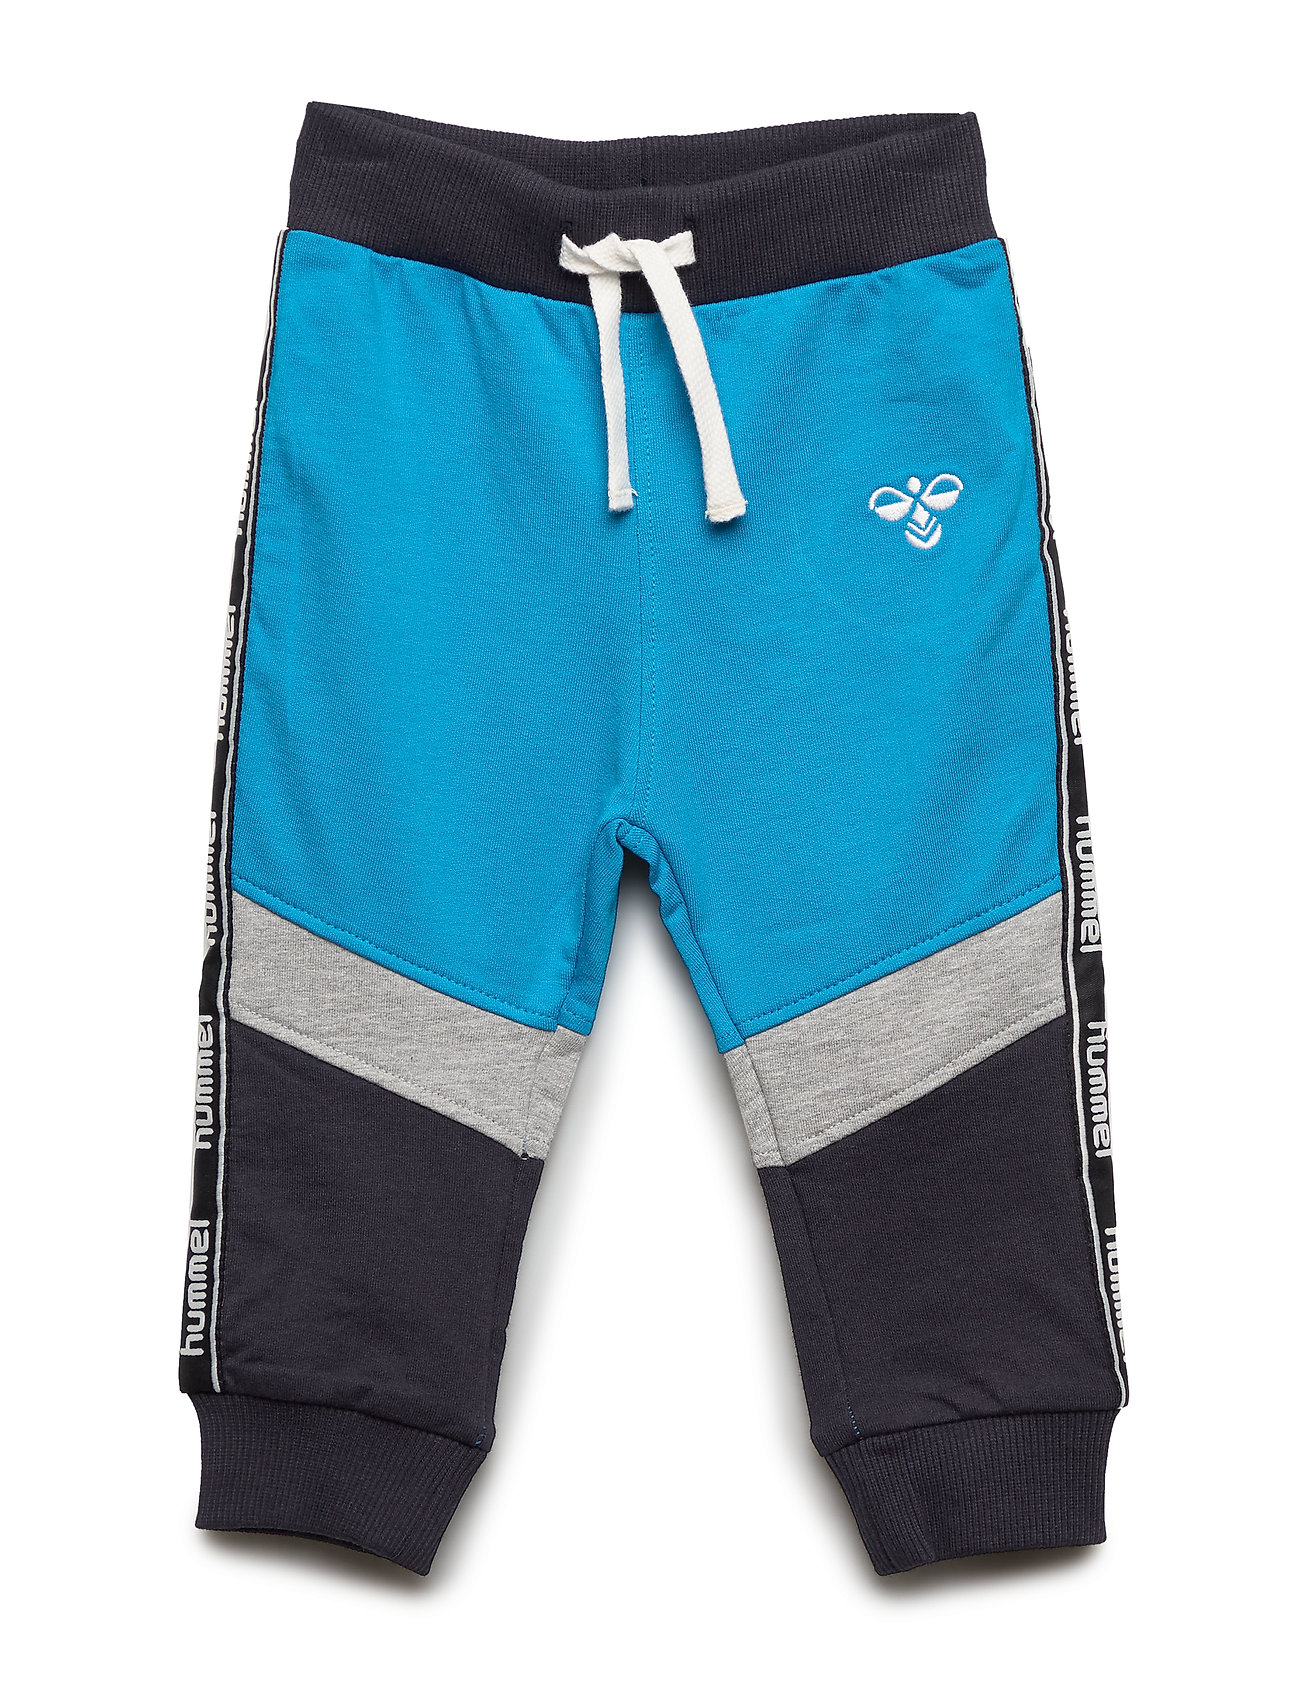 Hummel hmlREADY PANTS - DIVA BLUE